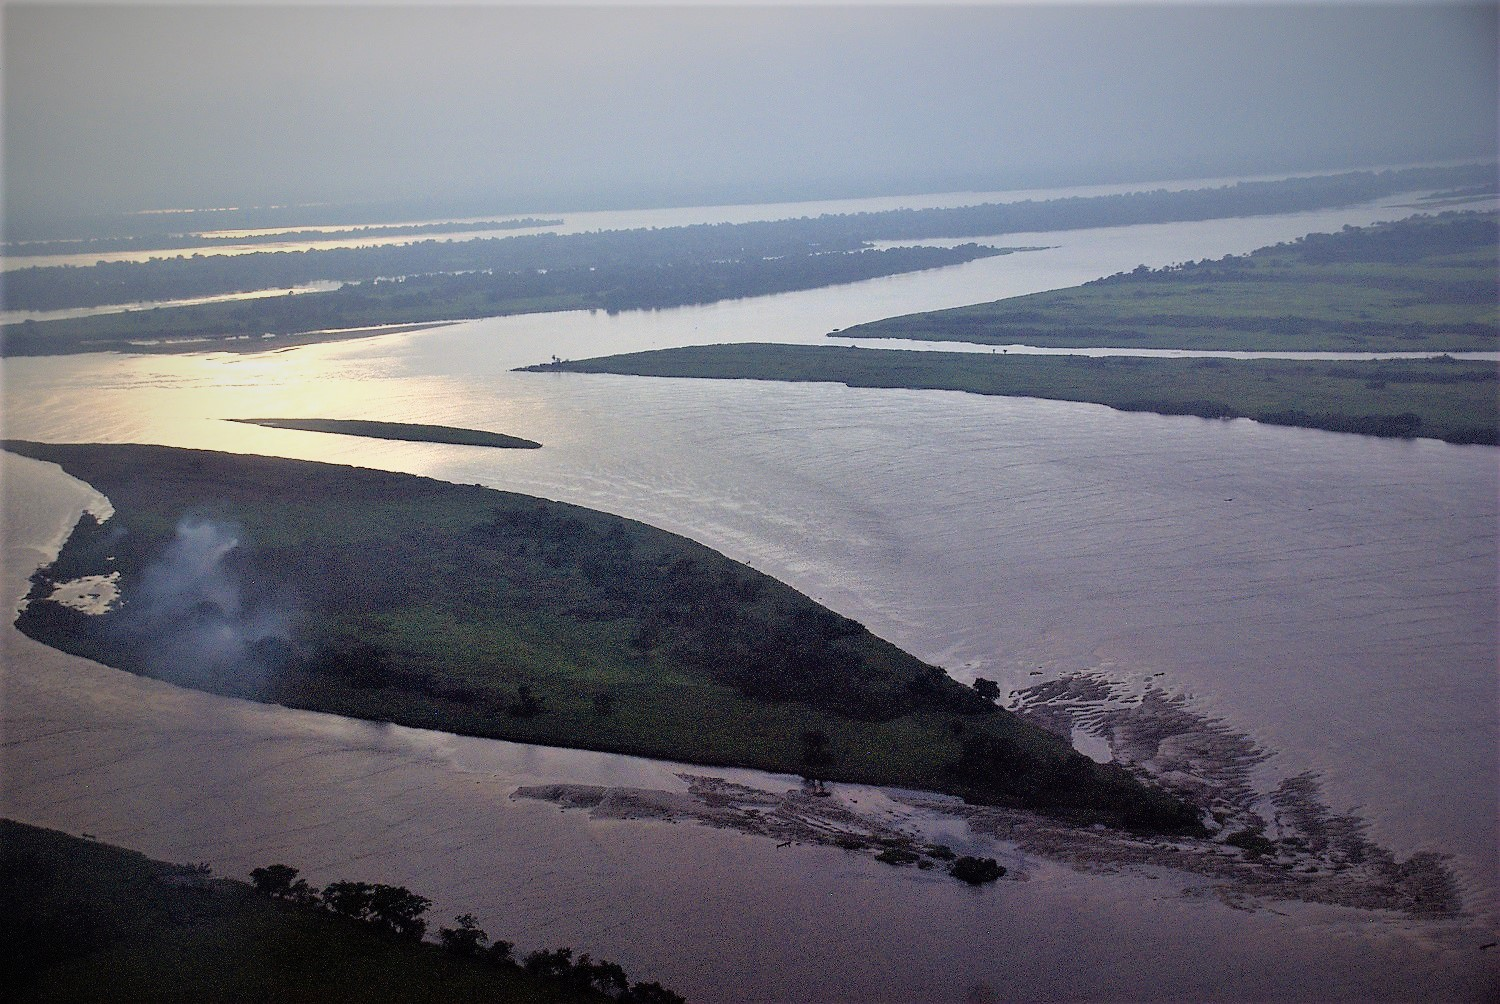 Synod of Bishops for Pan-Amazon Region: Process of Listening and Consultation is Underway